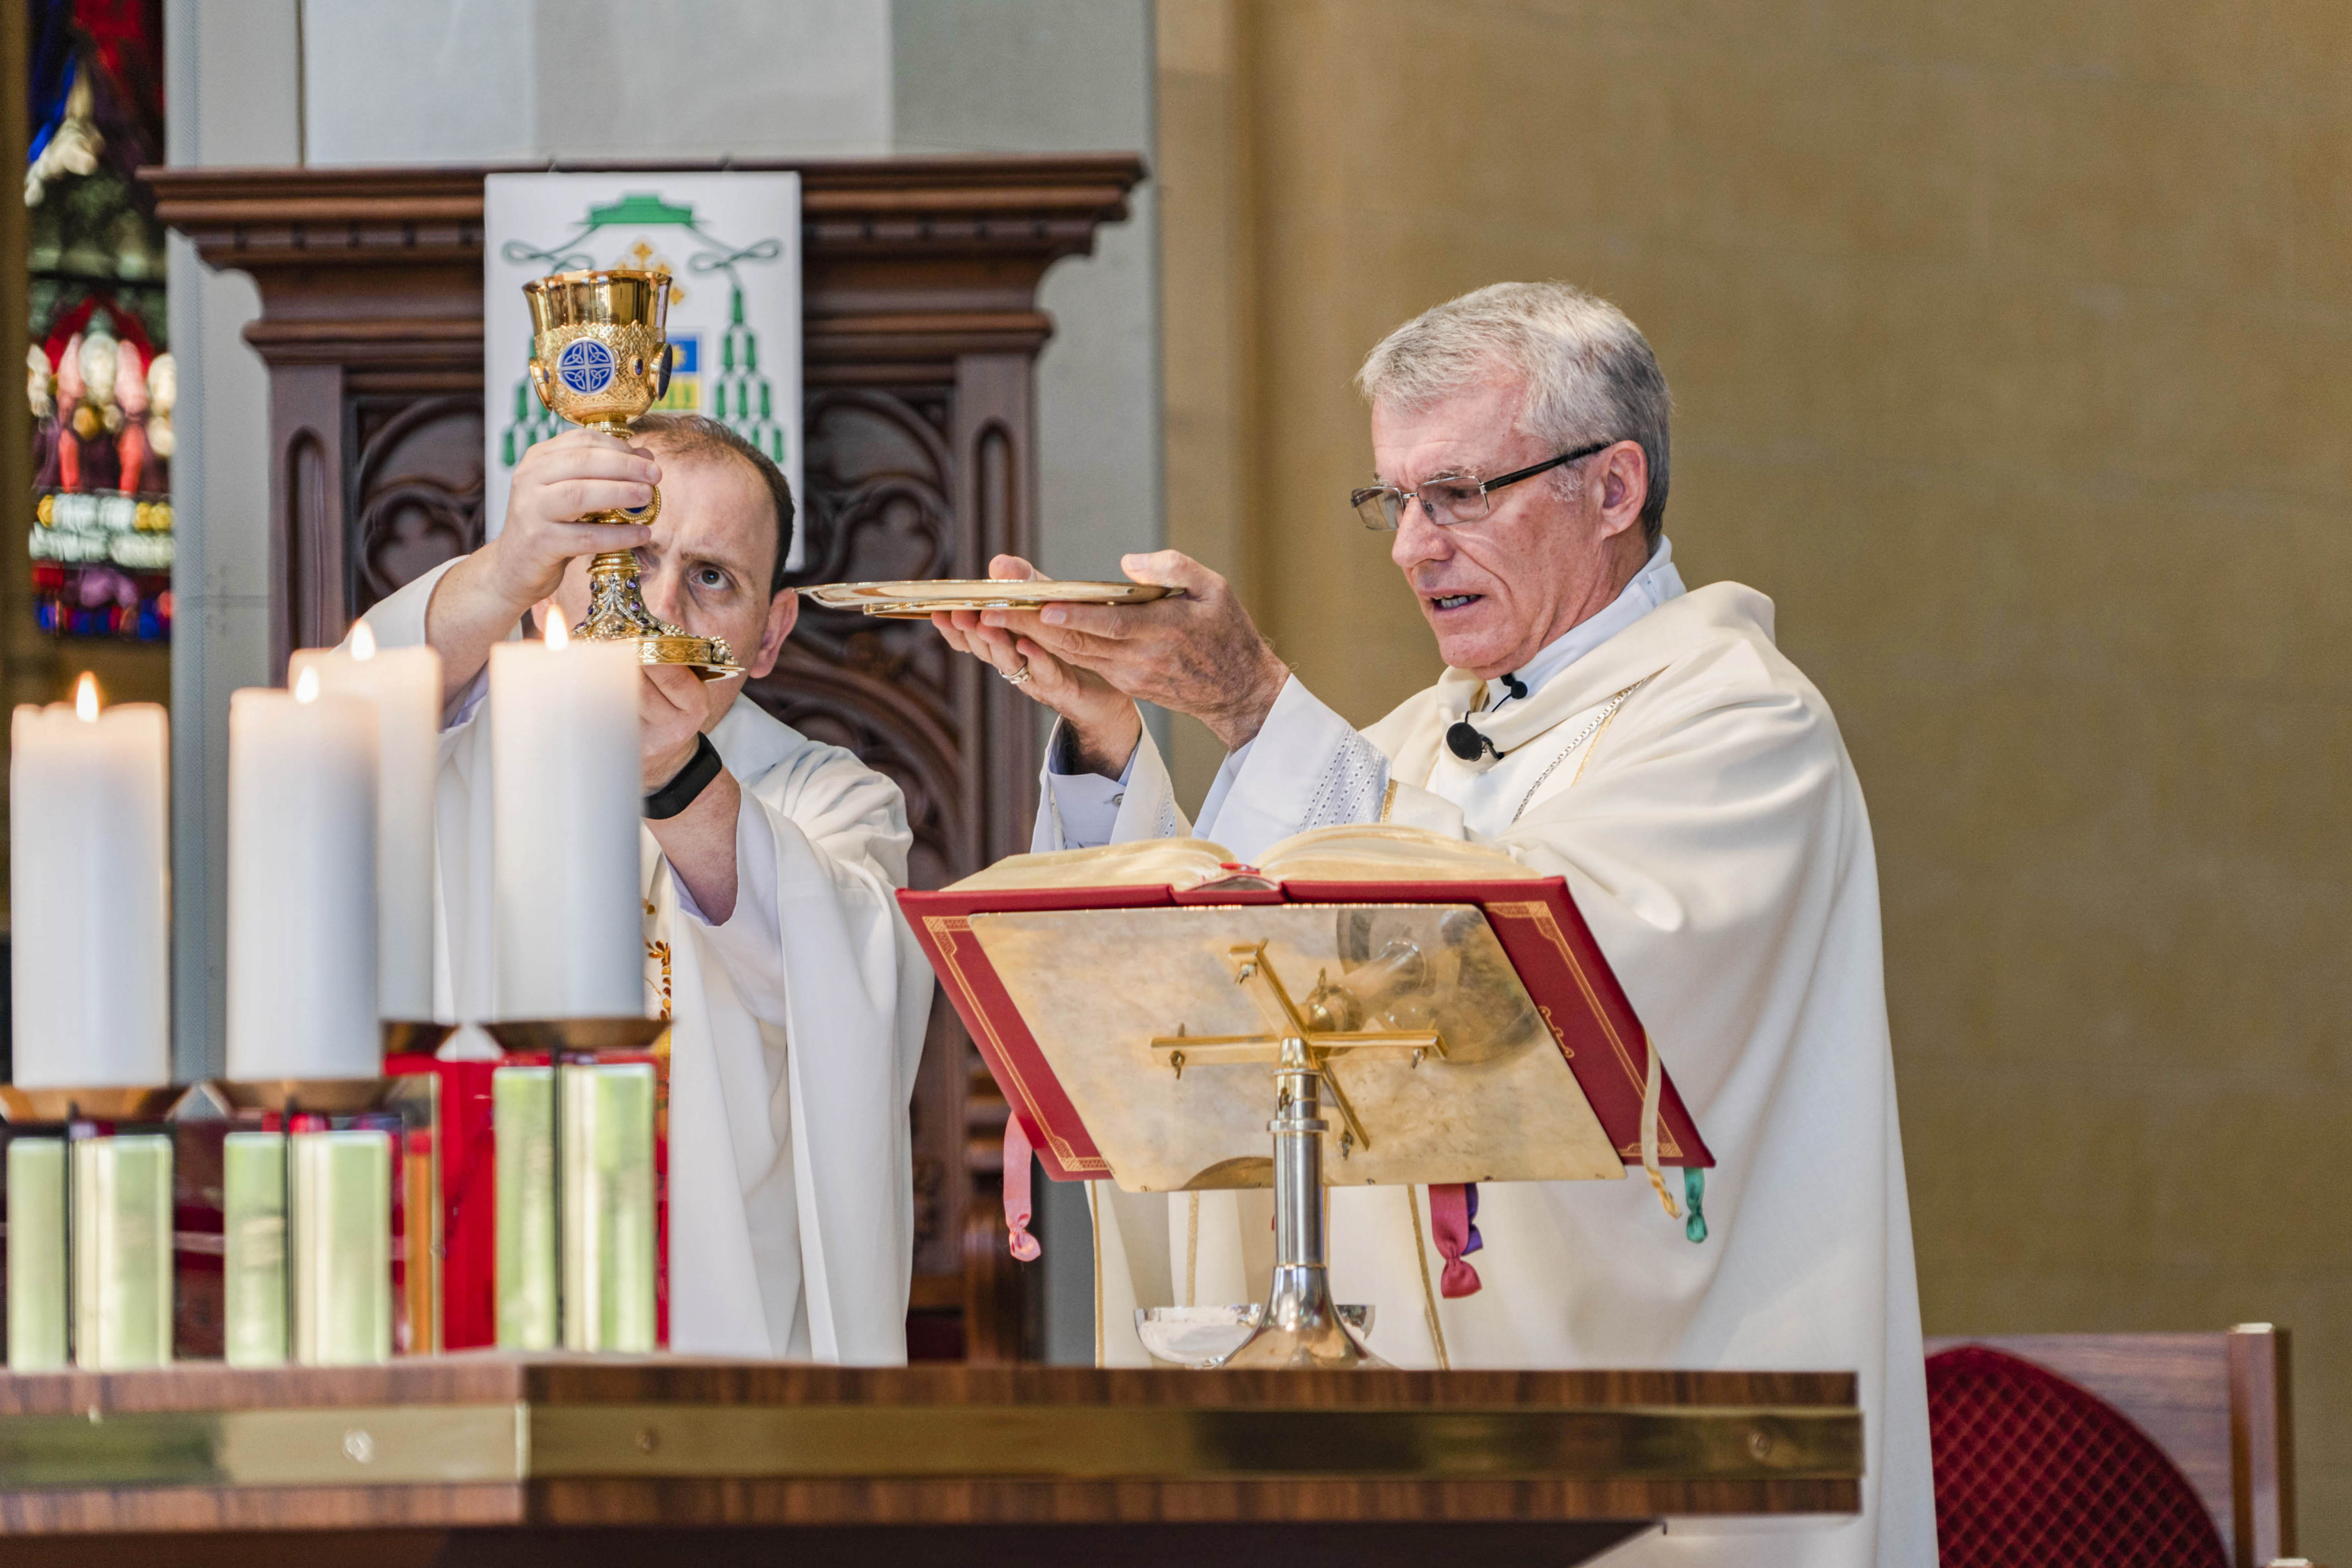 Perth Archbishop Timothy Costelloe (right) consecrates the Blessed Sacrament alongside St Mary's Cathedral Assistant Priest Fr CJ Millen on the Feast of Don Bosco, 31 January 2019. Photo: Feby Plando.